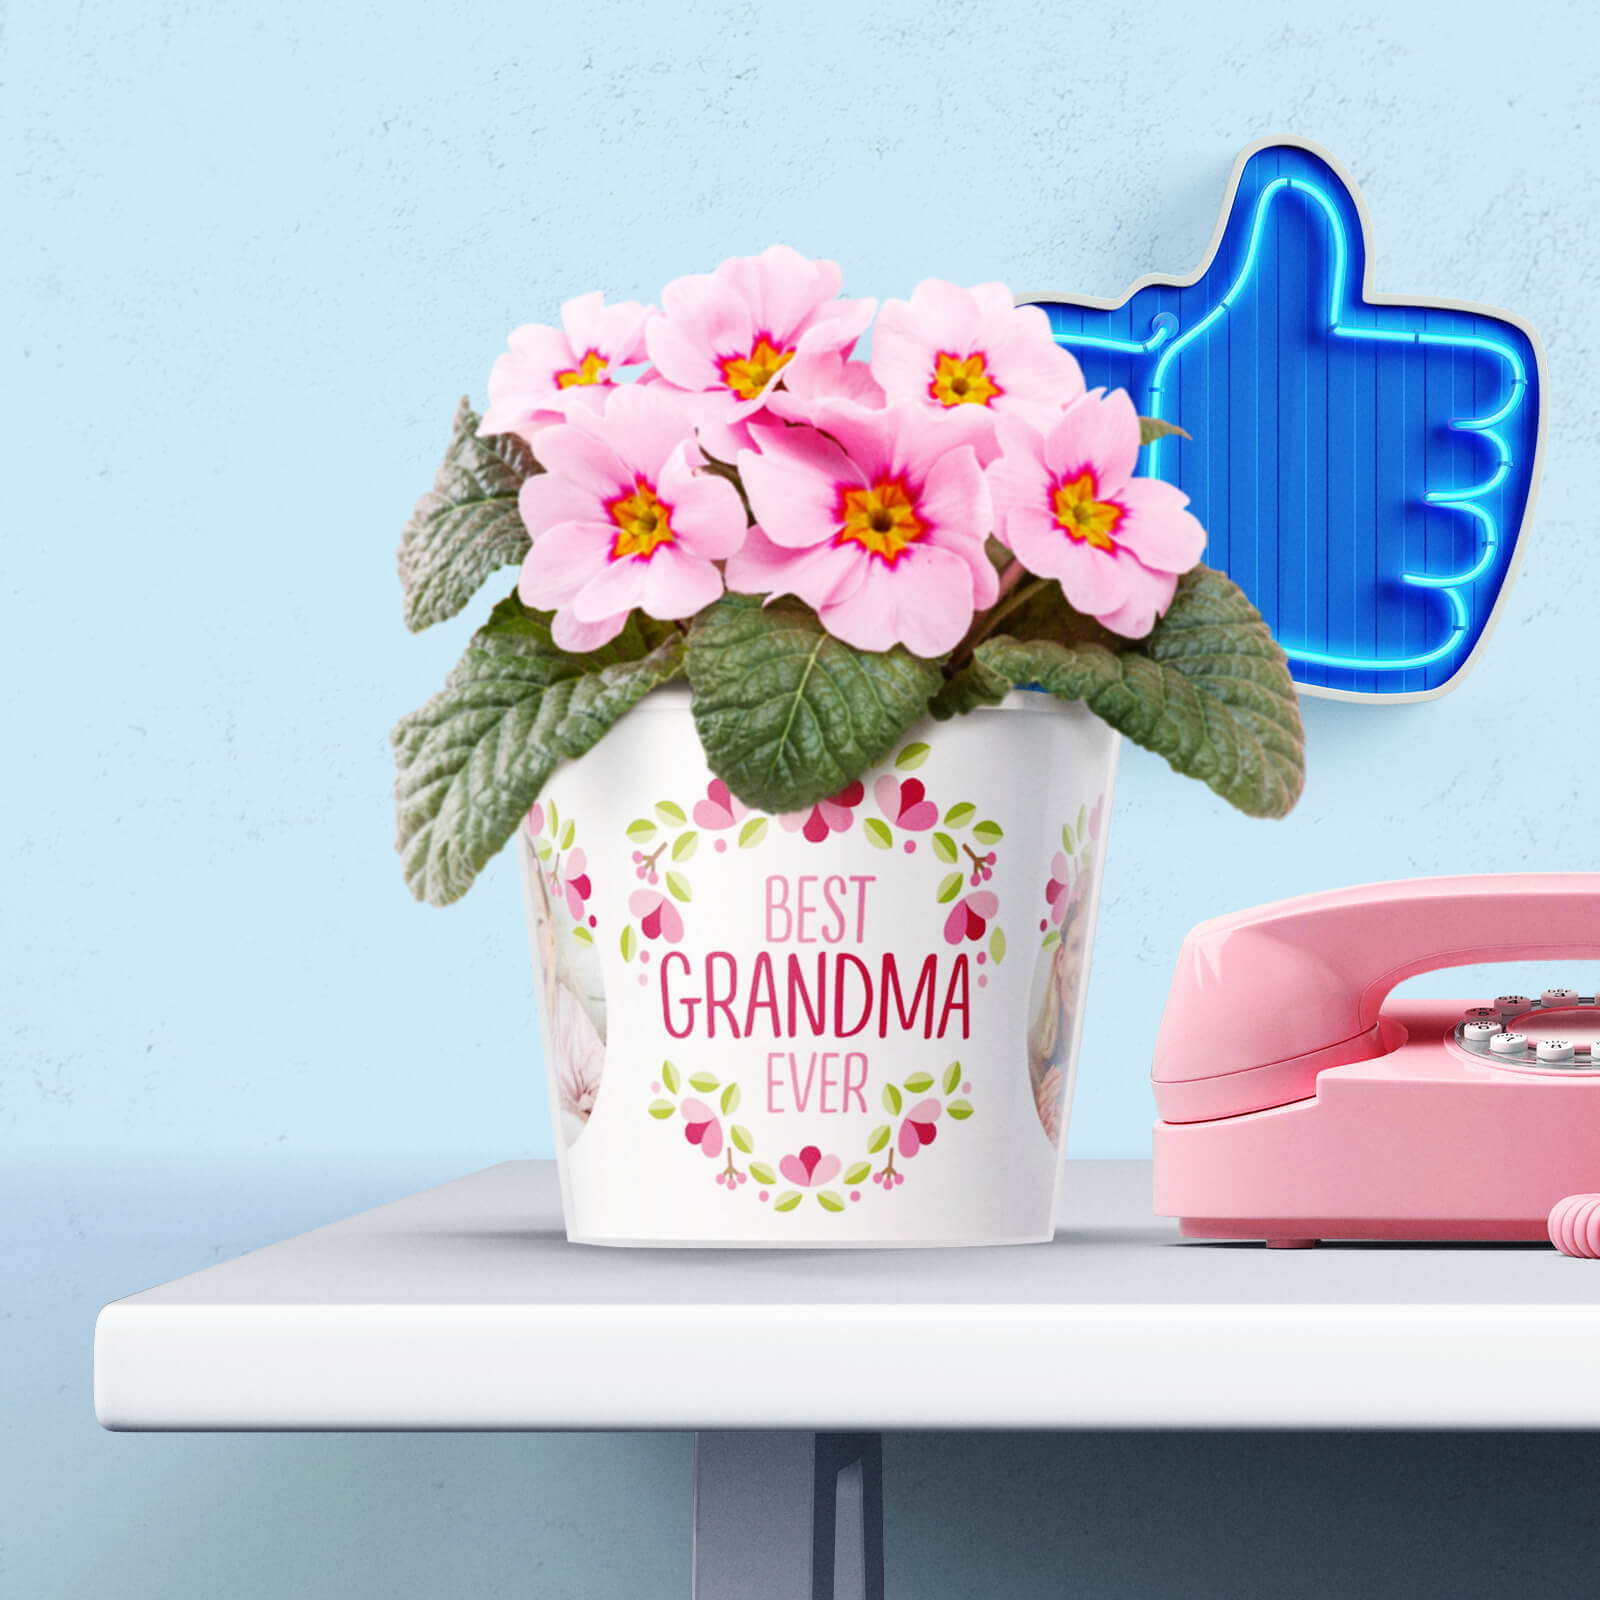 Best Grandma Gift Flower Pot